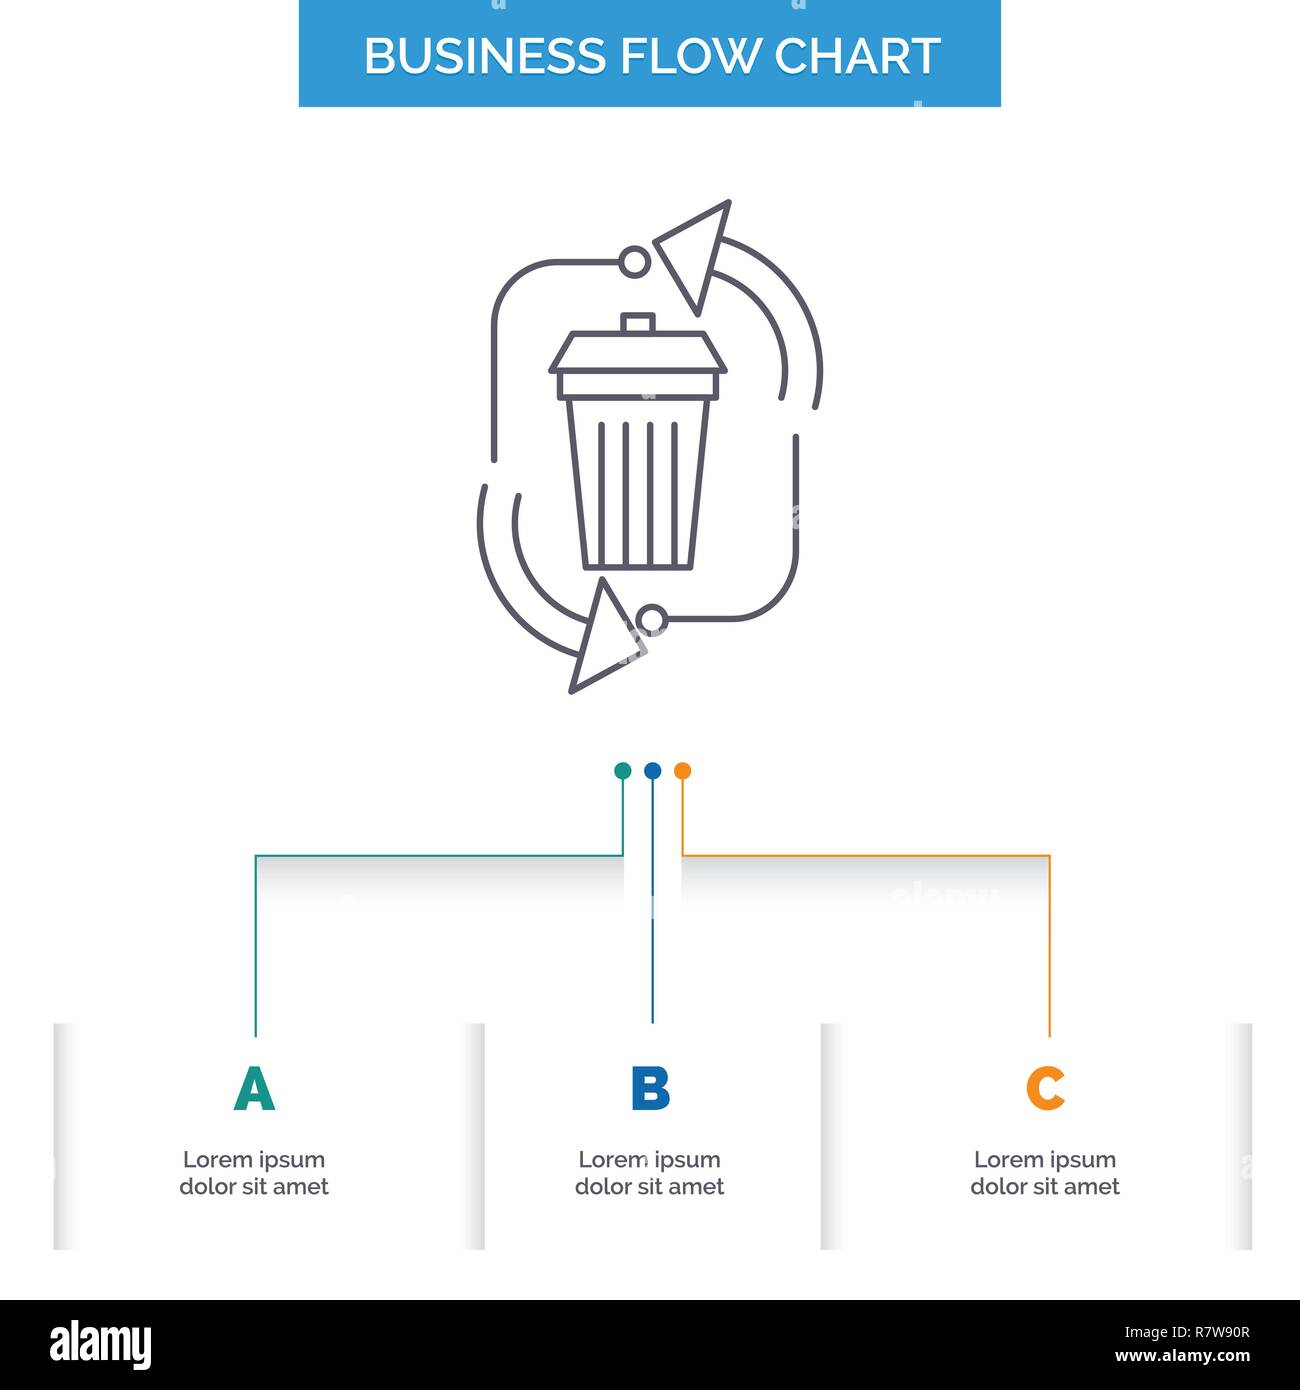 hight resolution of waste disposal garbage management recycle business flow chart design with 3 steps line icon for presentation background template place for text